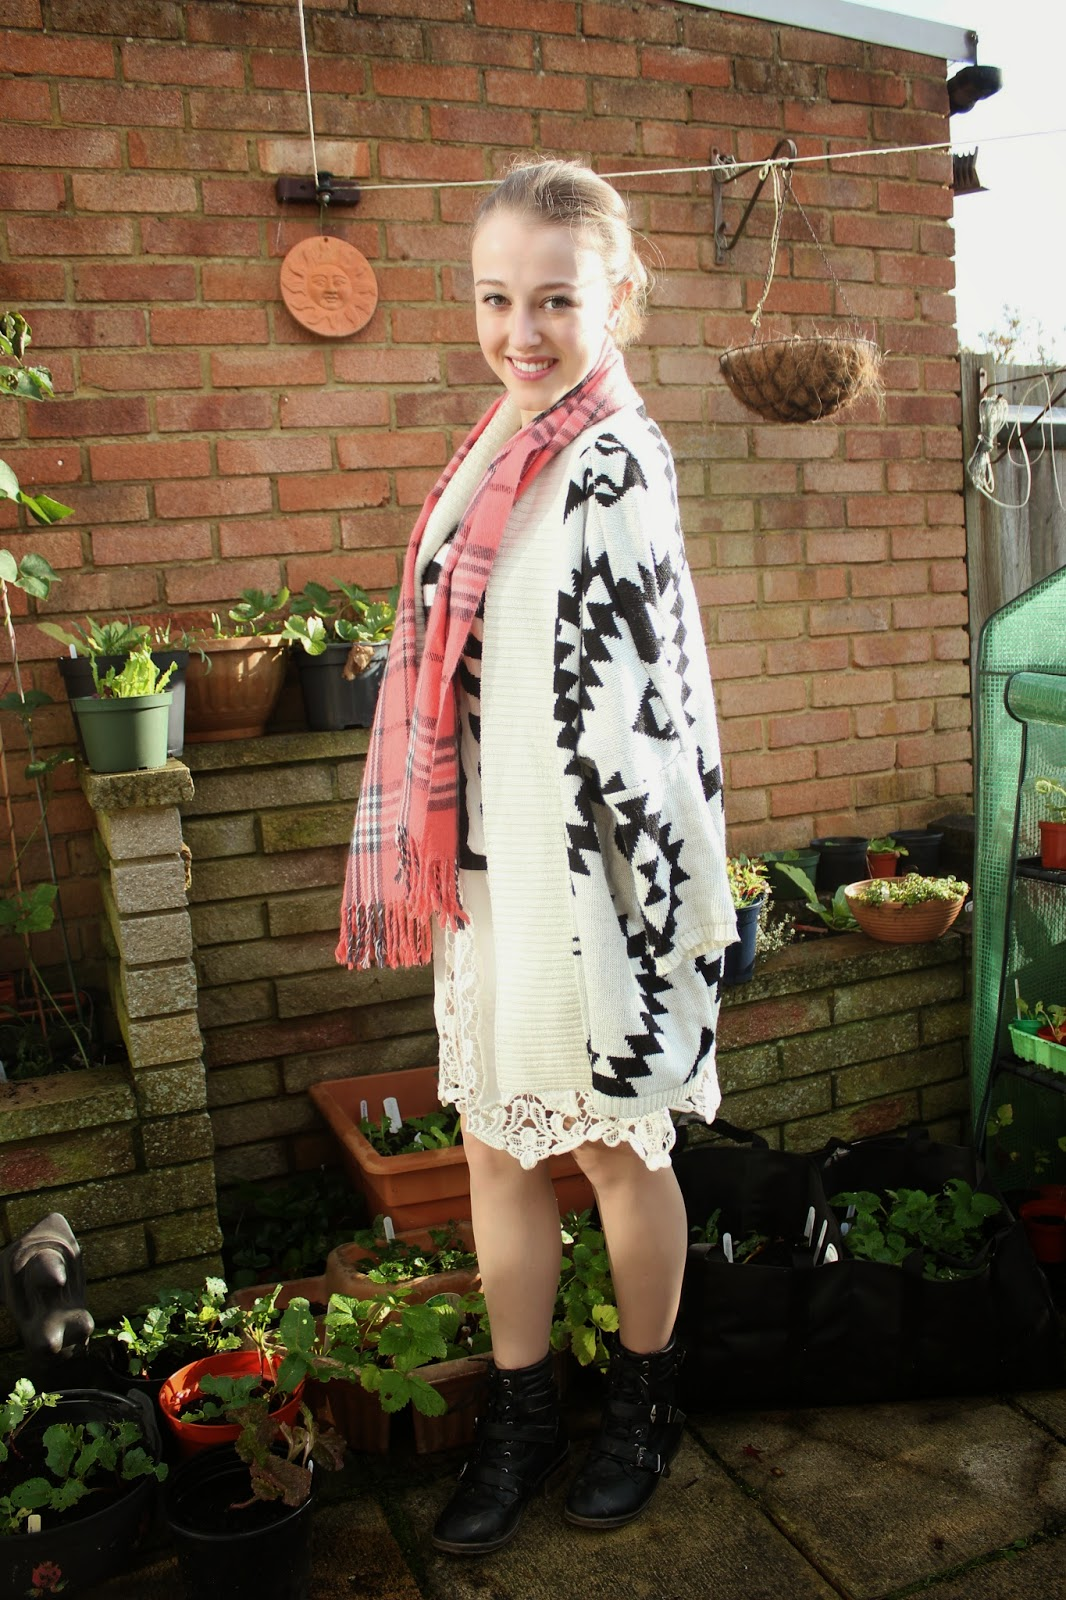 OOTD-blogger-fashion-outfit-inspiration-oasap-cardigan-aztec-print-jumper-skeleton-scarf-vintage-lace-skirt-ukele-boots-new-look-necklace-topshop-style-clothes